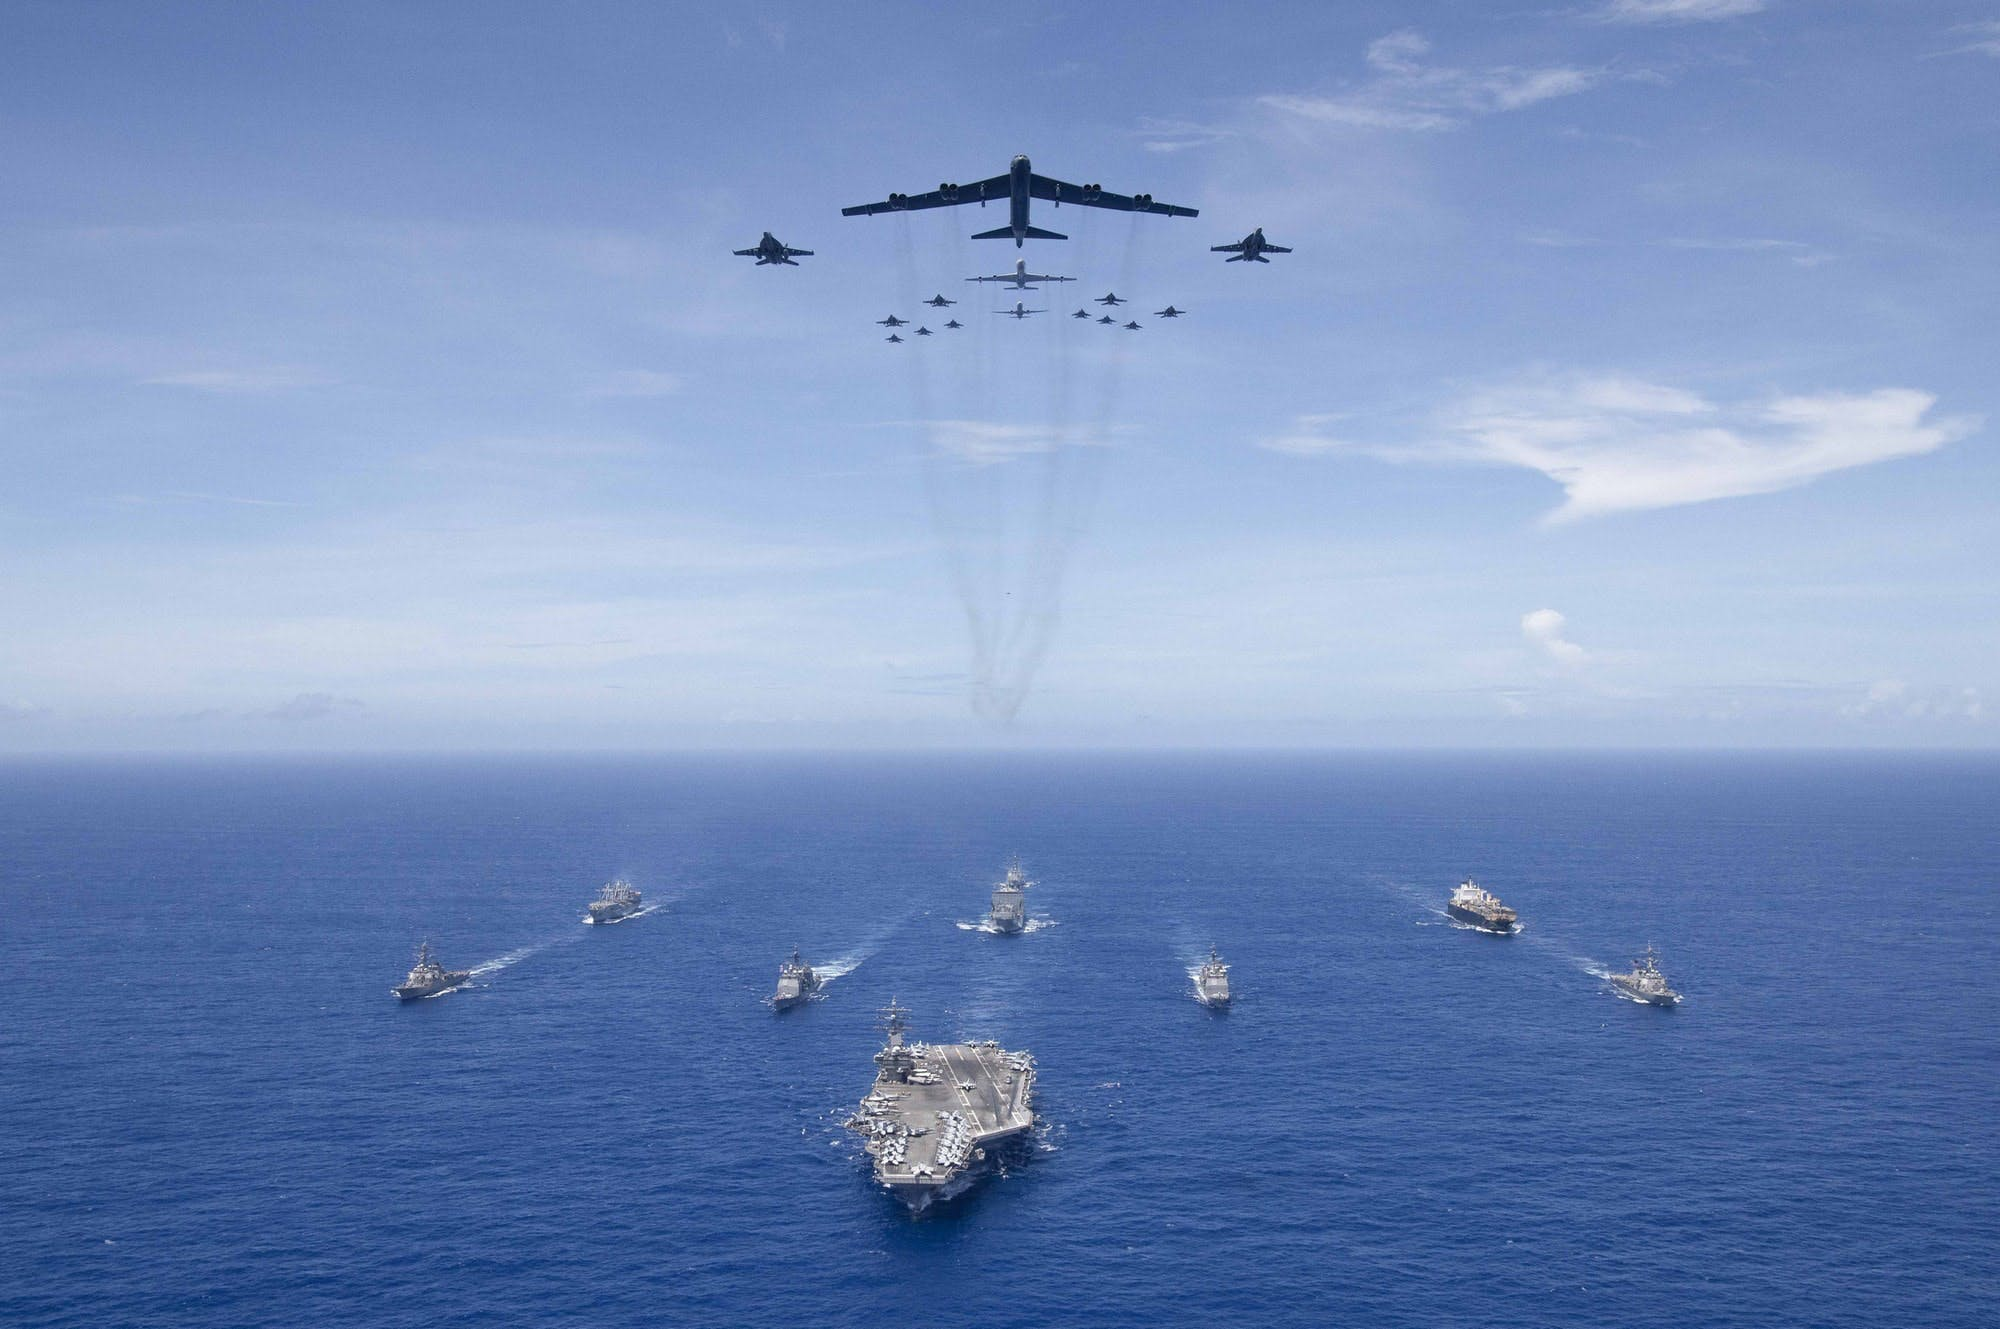 US Forces conduct massive exercise 'Valiant Shield' in the